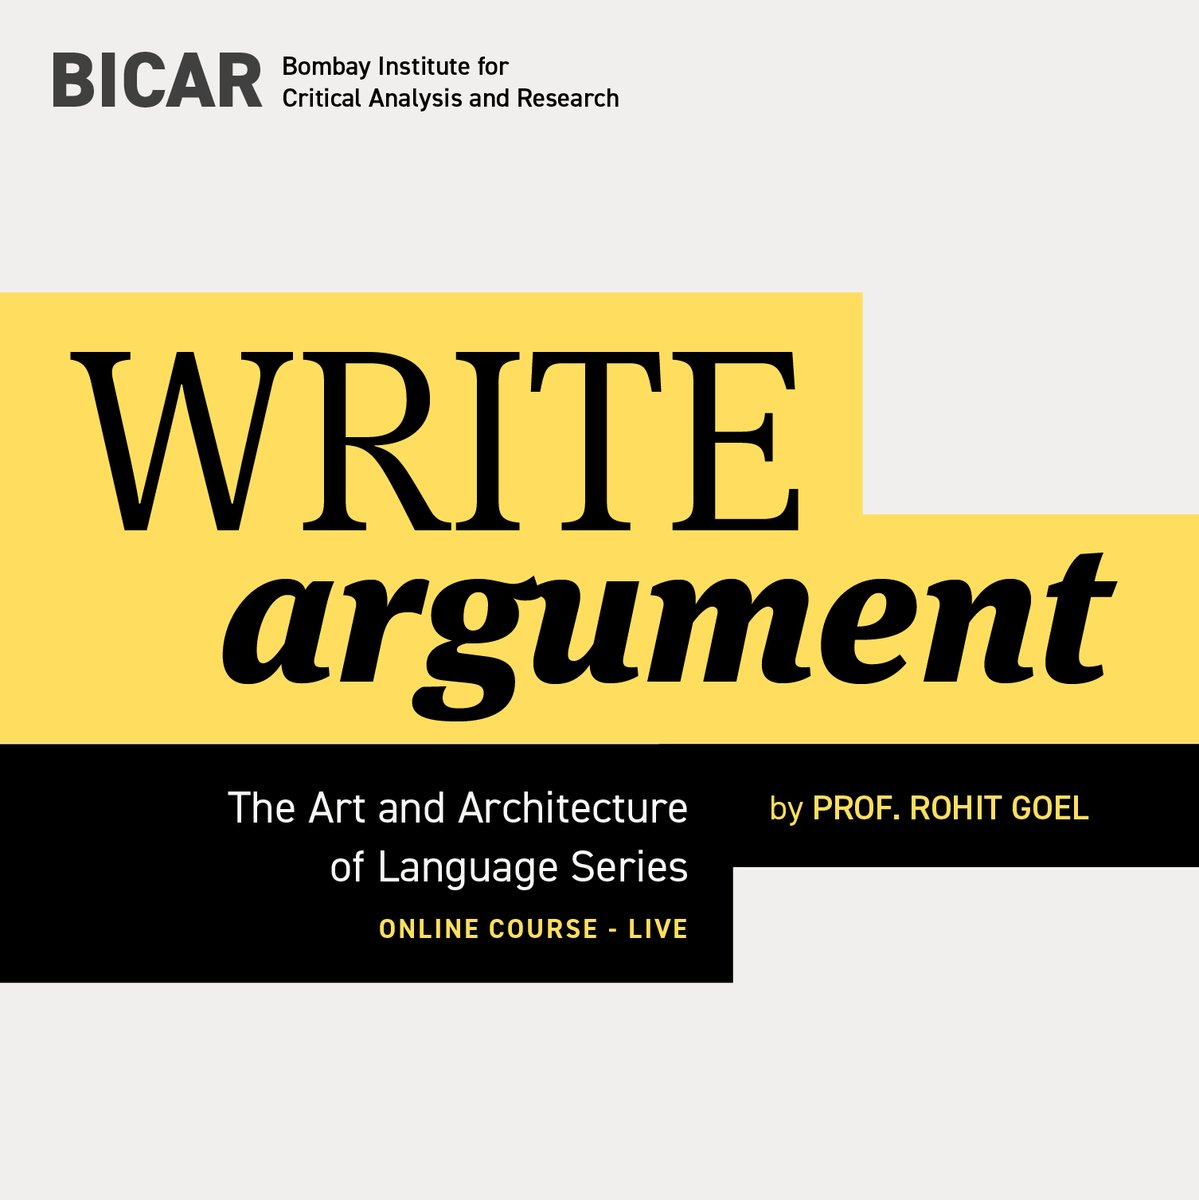 #bpbBank: Our favourite Colaba classroom goes online. The Bombay Institute for Critical Analysis and Research (BICAR) continues its writing courses, taking WRITE: Argument, to the web and into your homes.